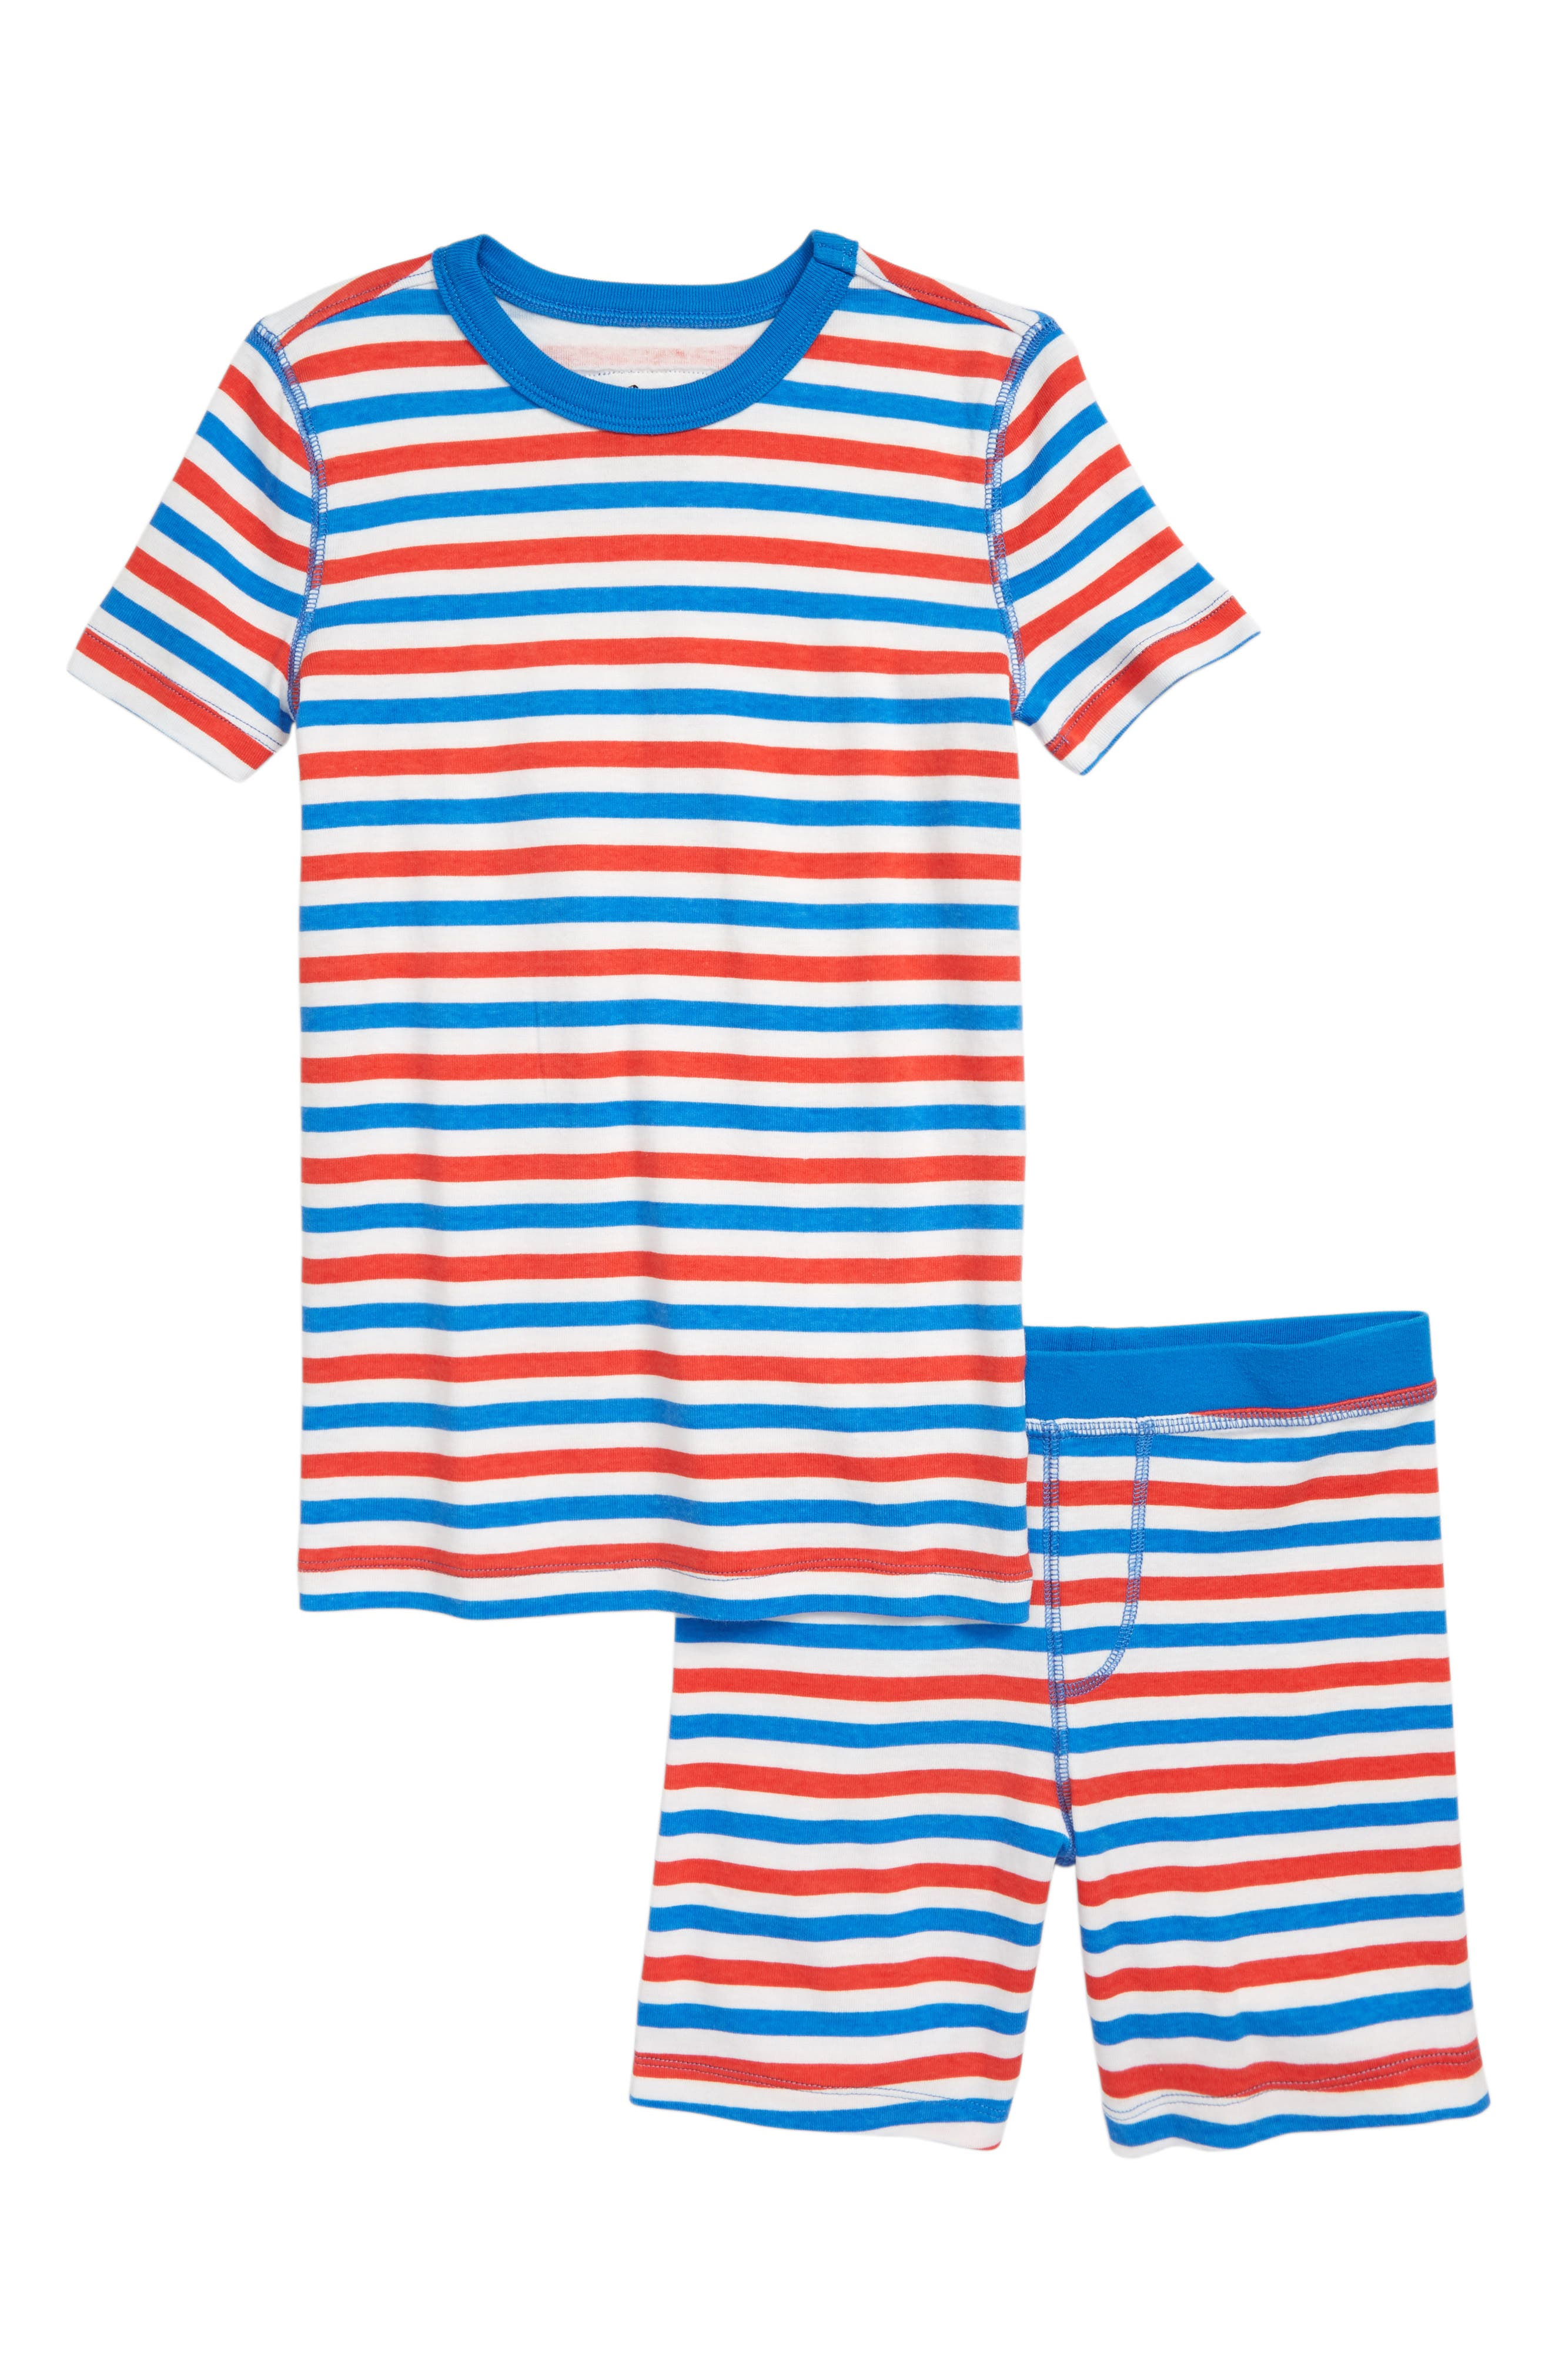 Boys Crewcuts By Jcrew Stripe Fitted TwoPiece Pajamas Size 6  Bluegreen